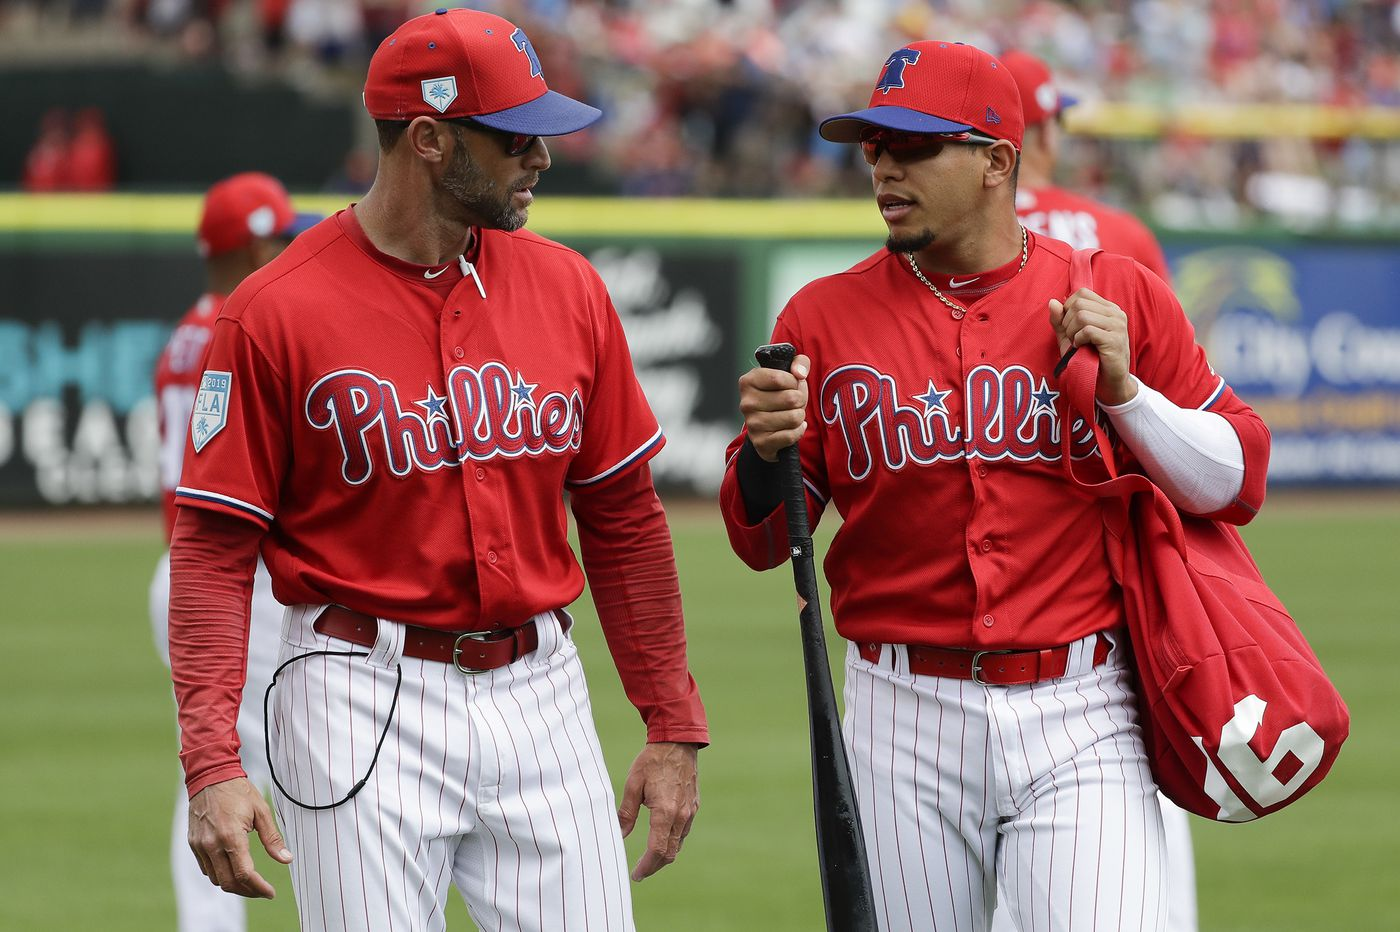 809d93db0 Baseball preview: National League capsules, odds, stats and storylines